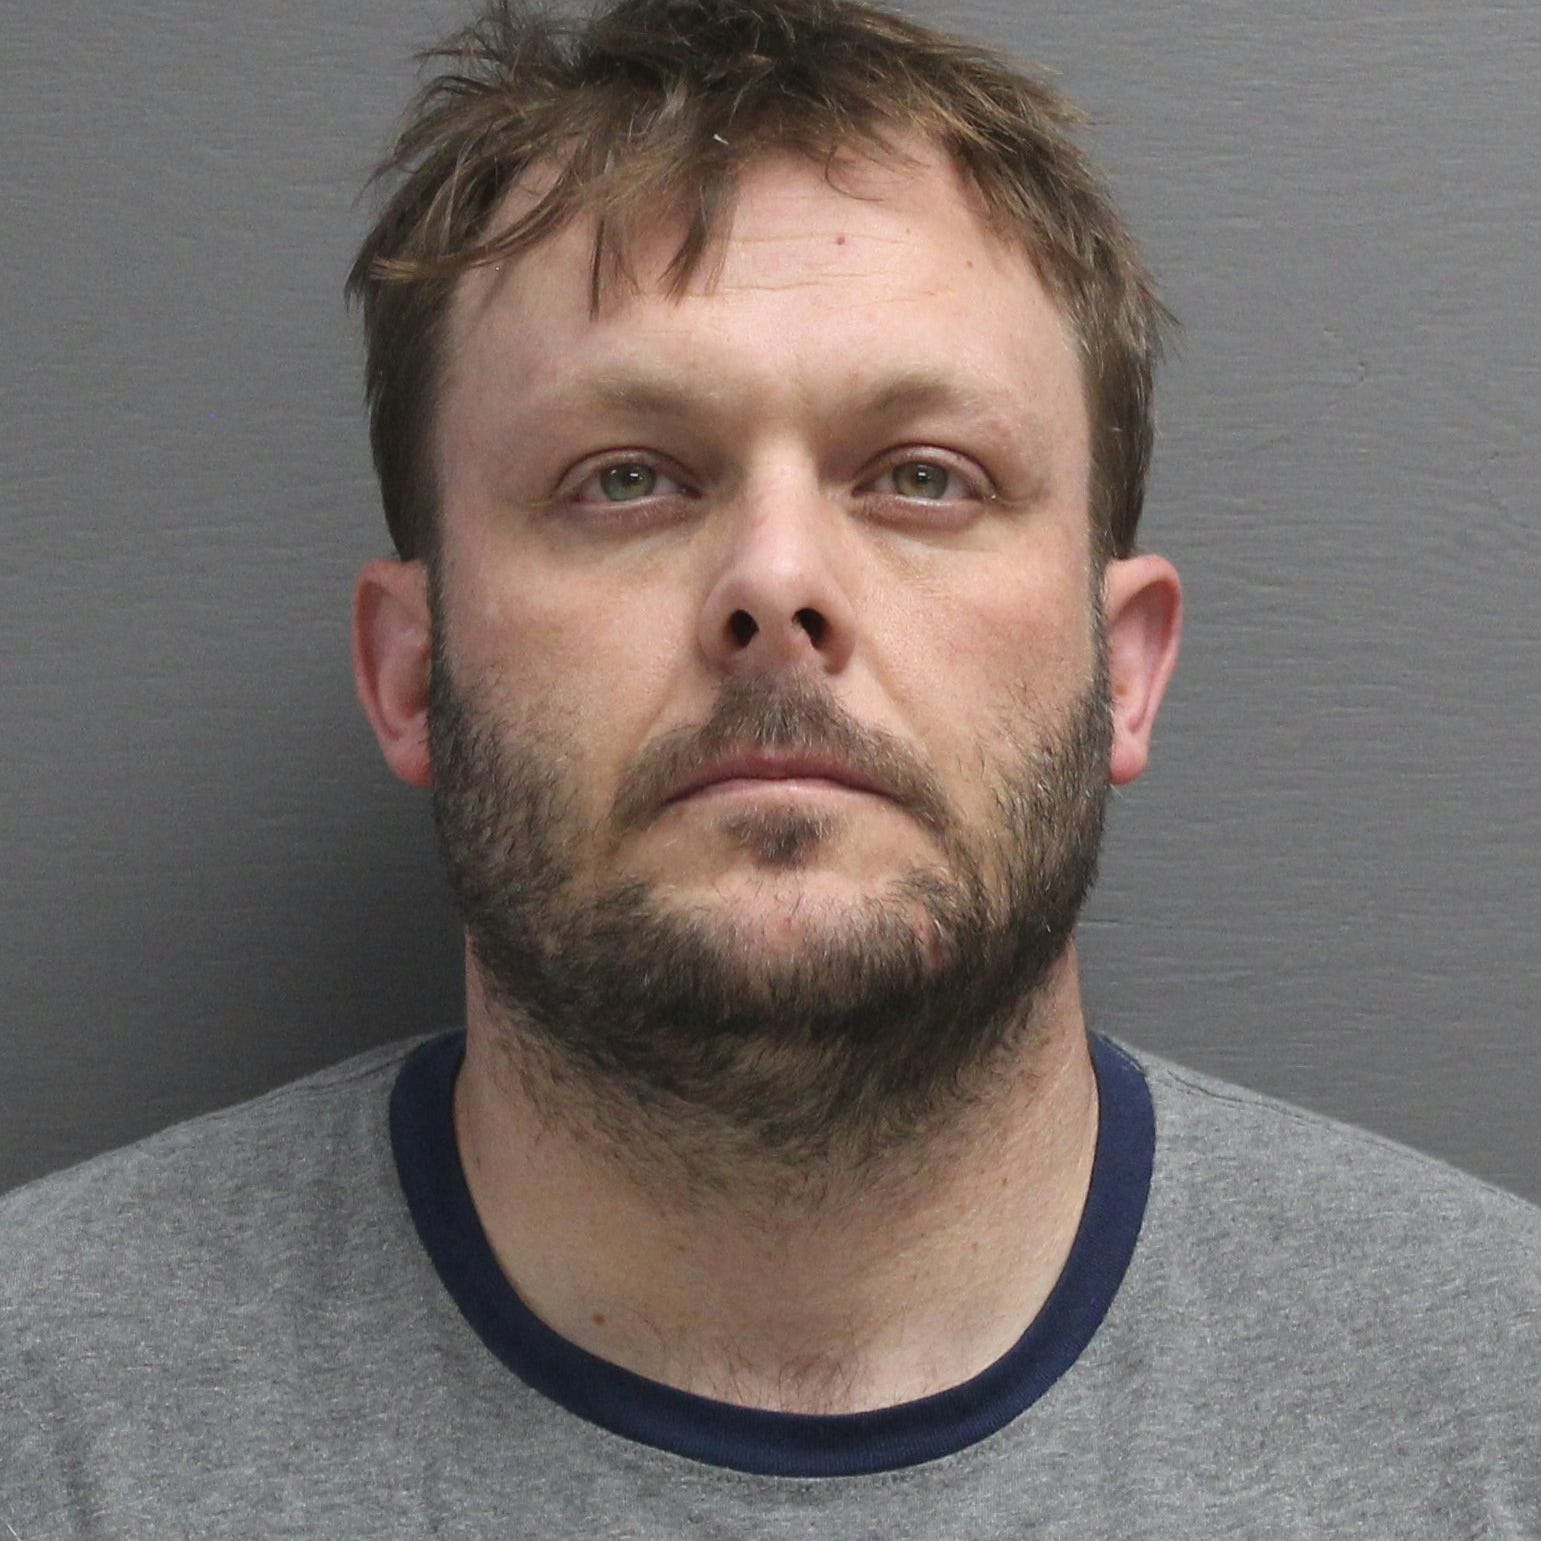 Abused Movies Porn Video great falls man charged for sex abuse facing more than 100